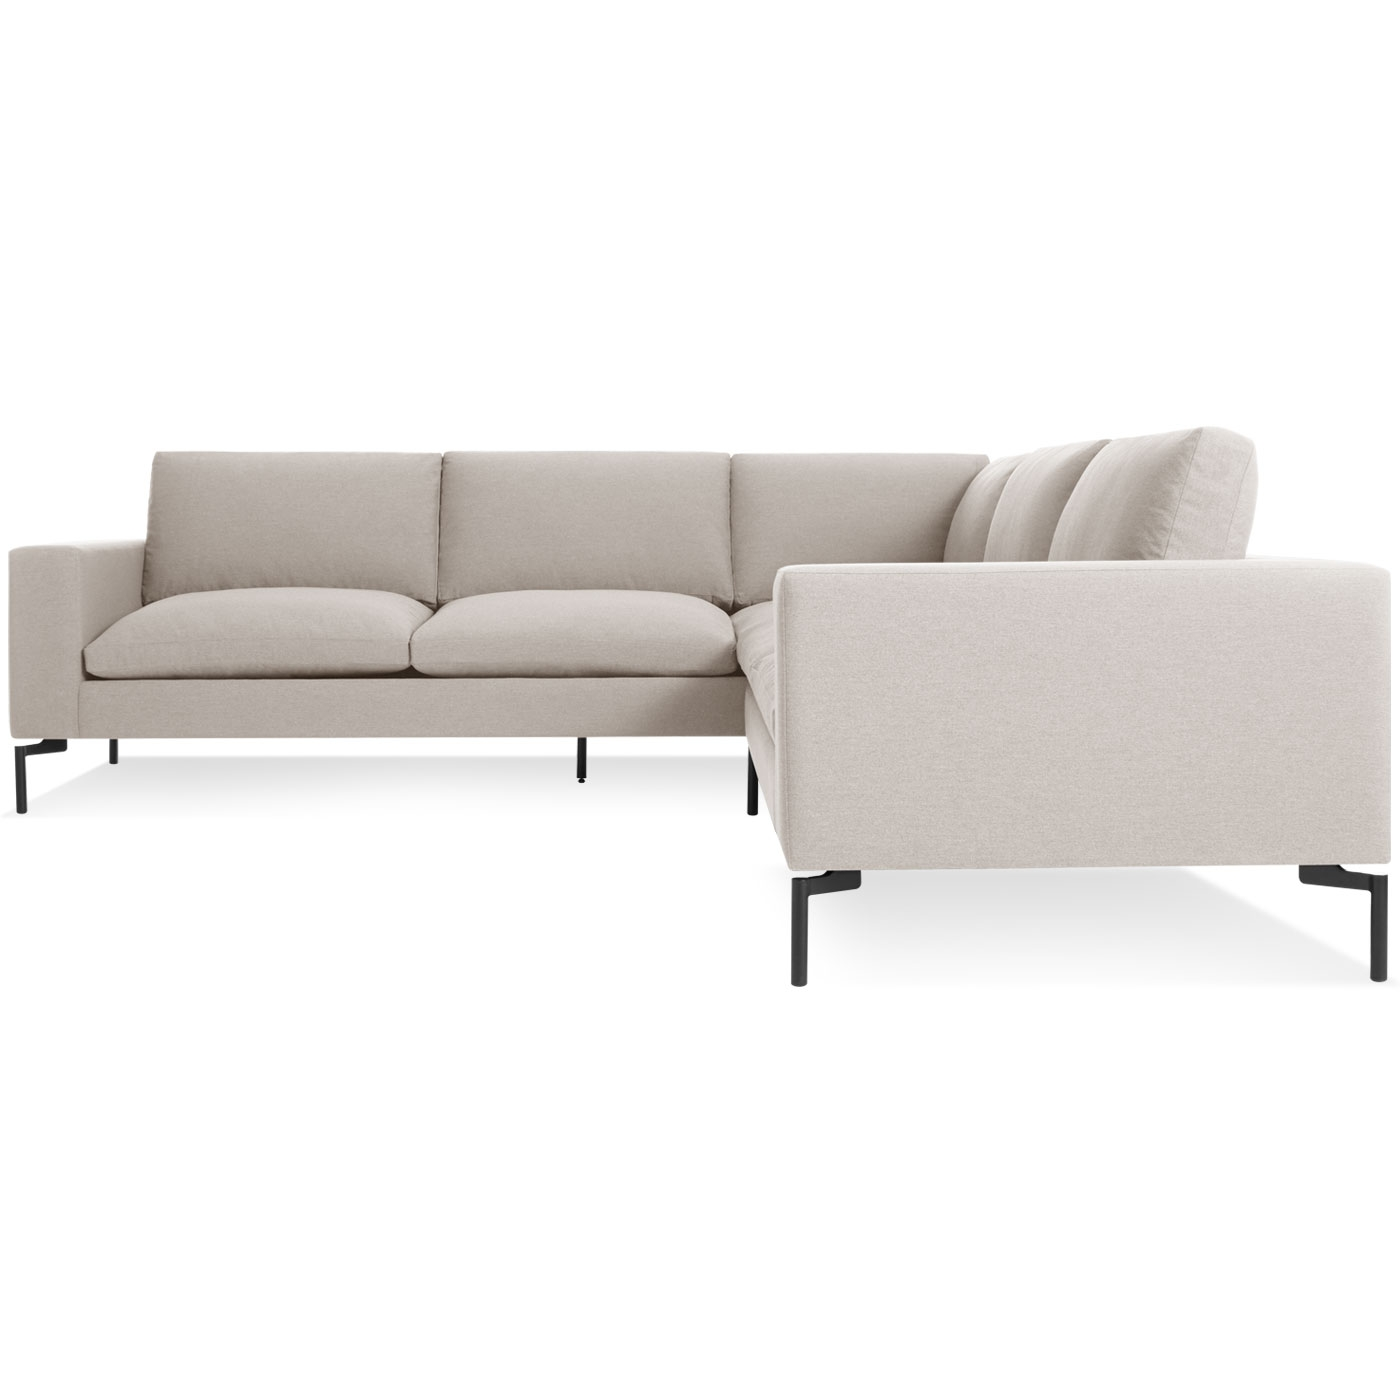 New Standard Small Sectional Sofa Modern Sofas Blu Dot With Regard To Small Sectional Sofa (#5 of 12)